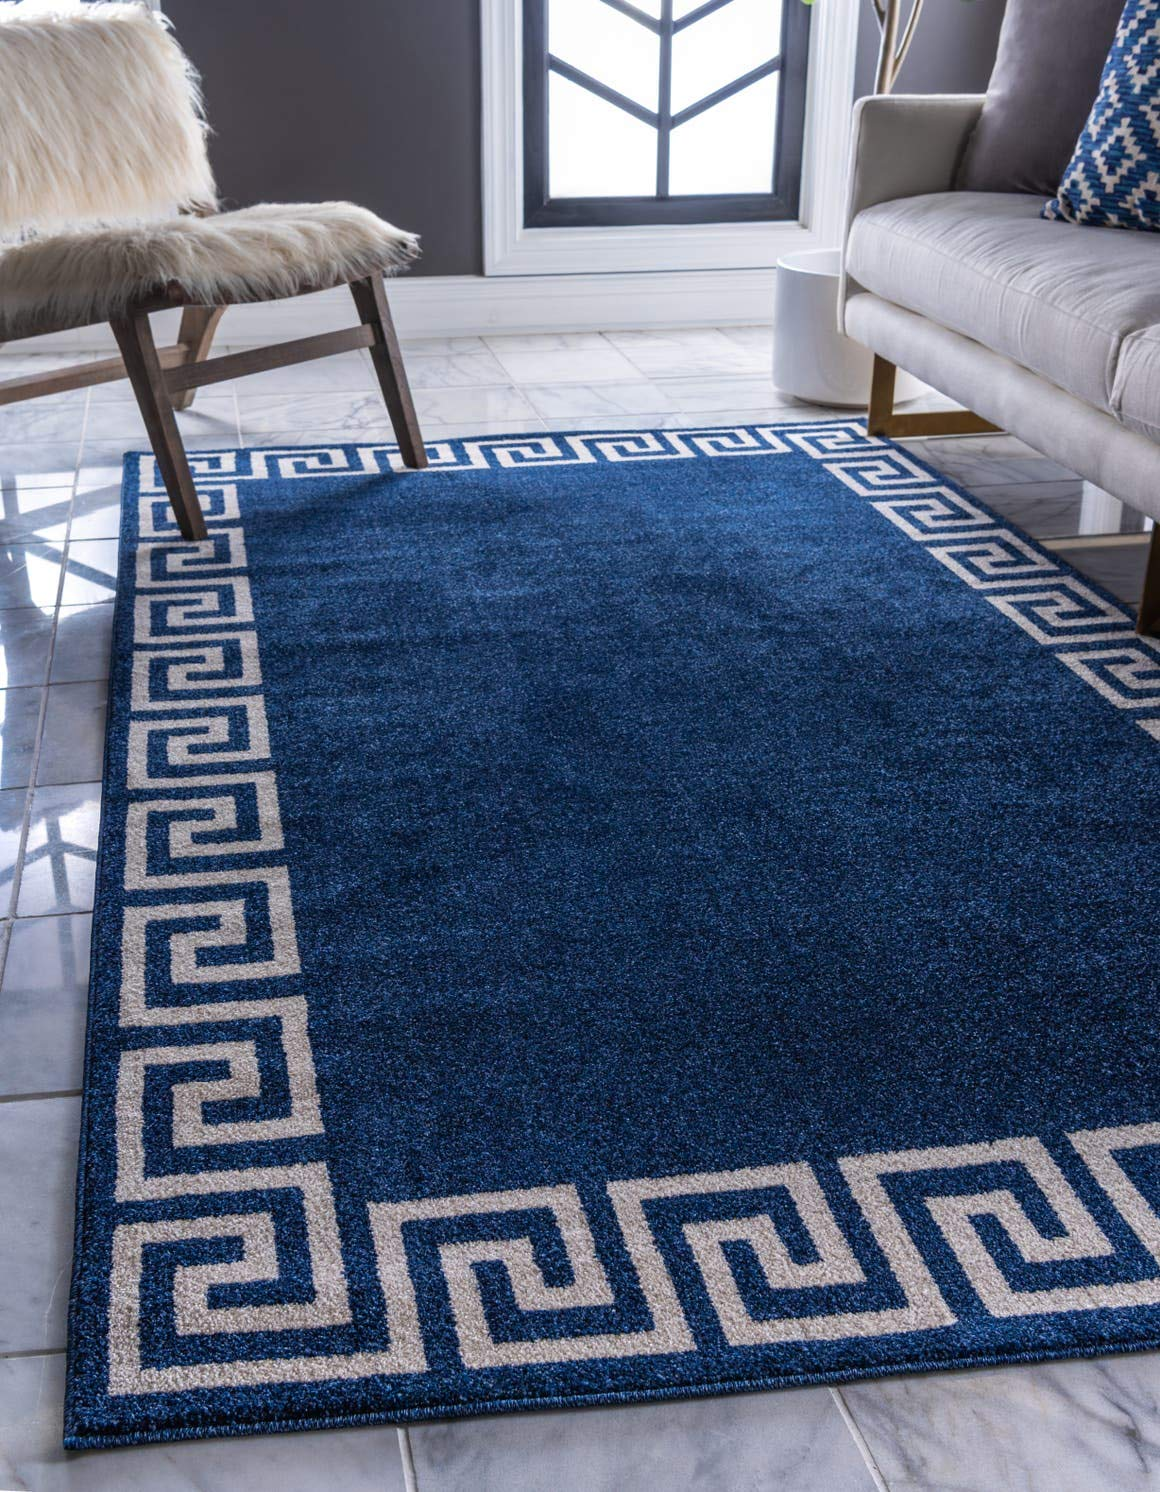 Unique Loom Athens Collection Geometric Casual Modern Border Navy Blue Area Rug 6 0 x 9 0